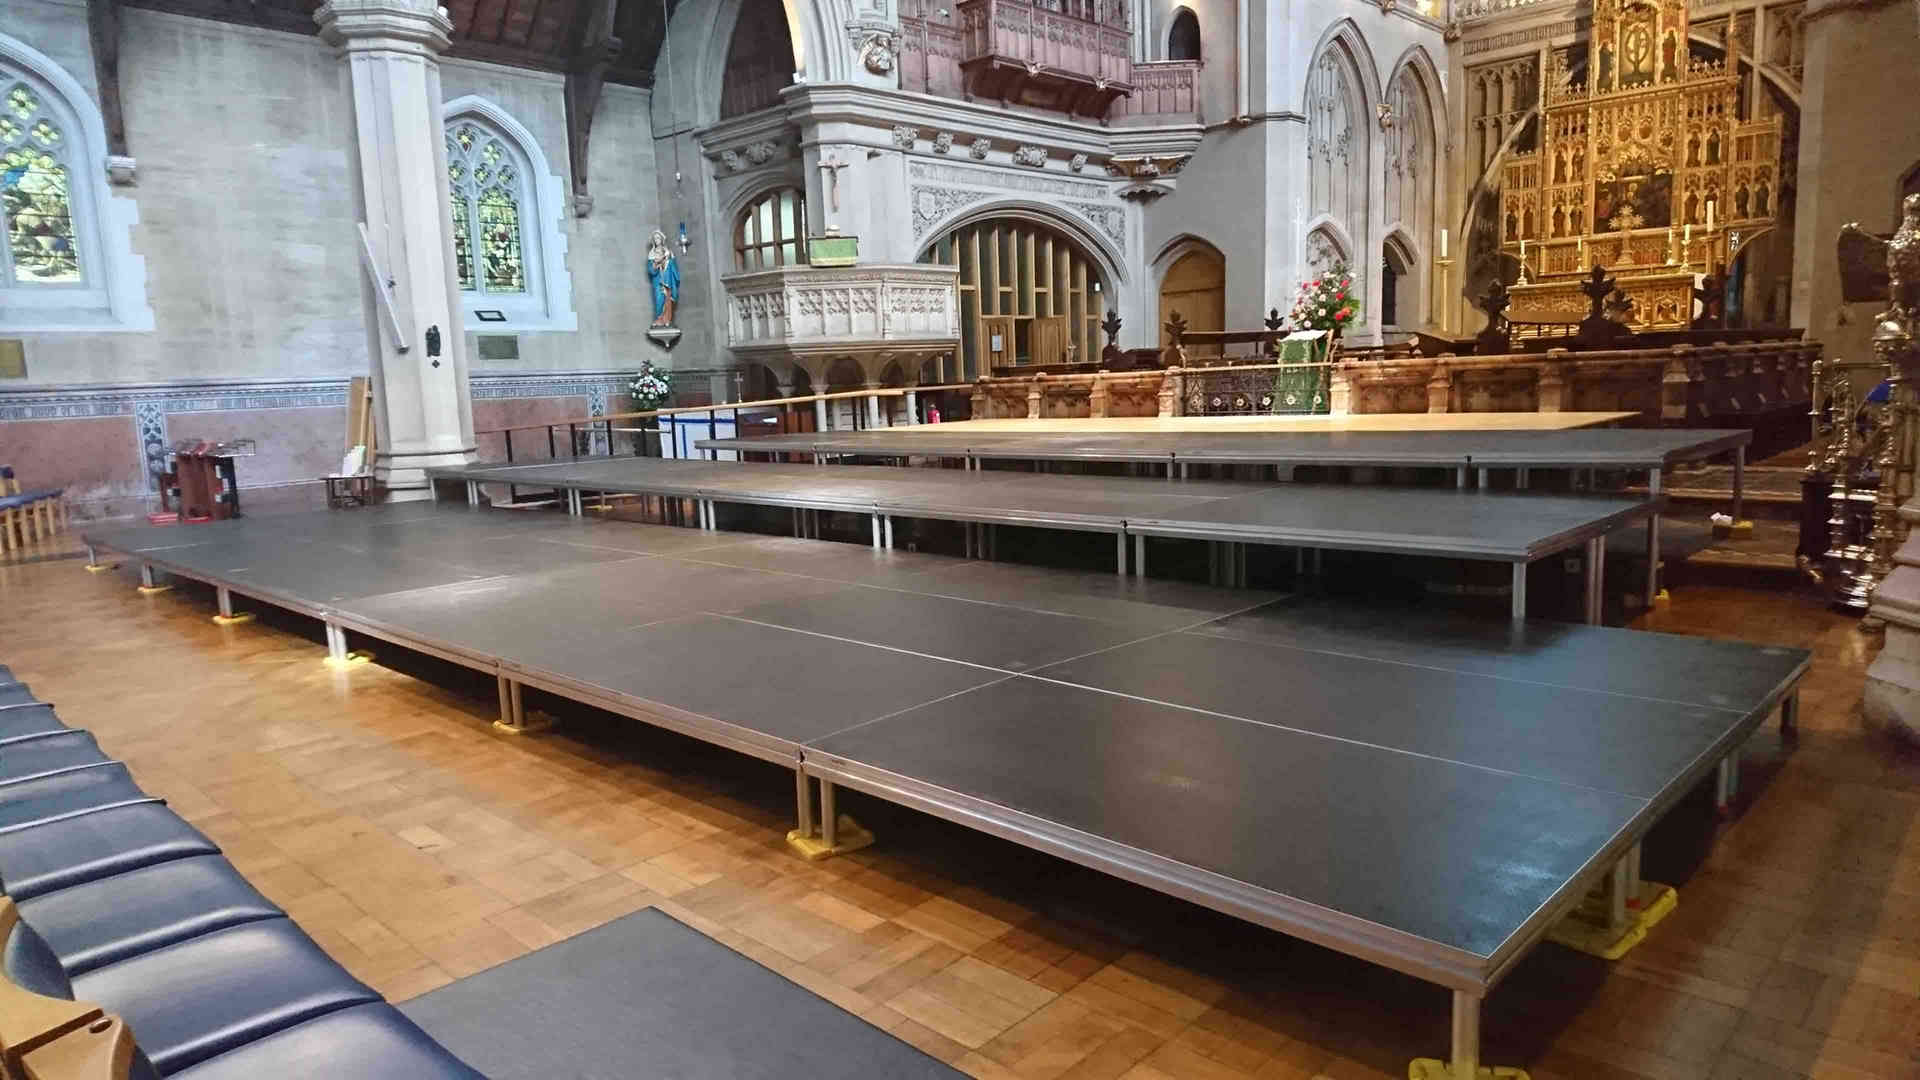 058 Large Tiered Stage in London.jpg